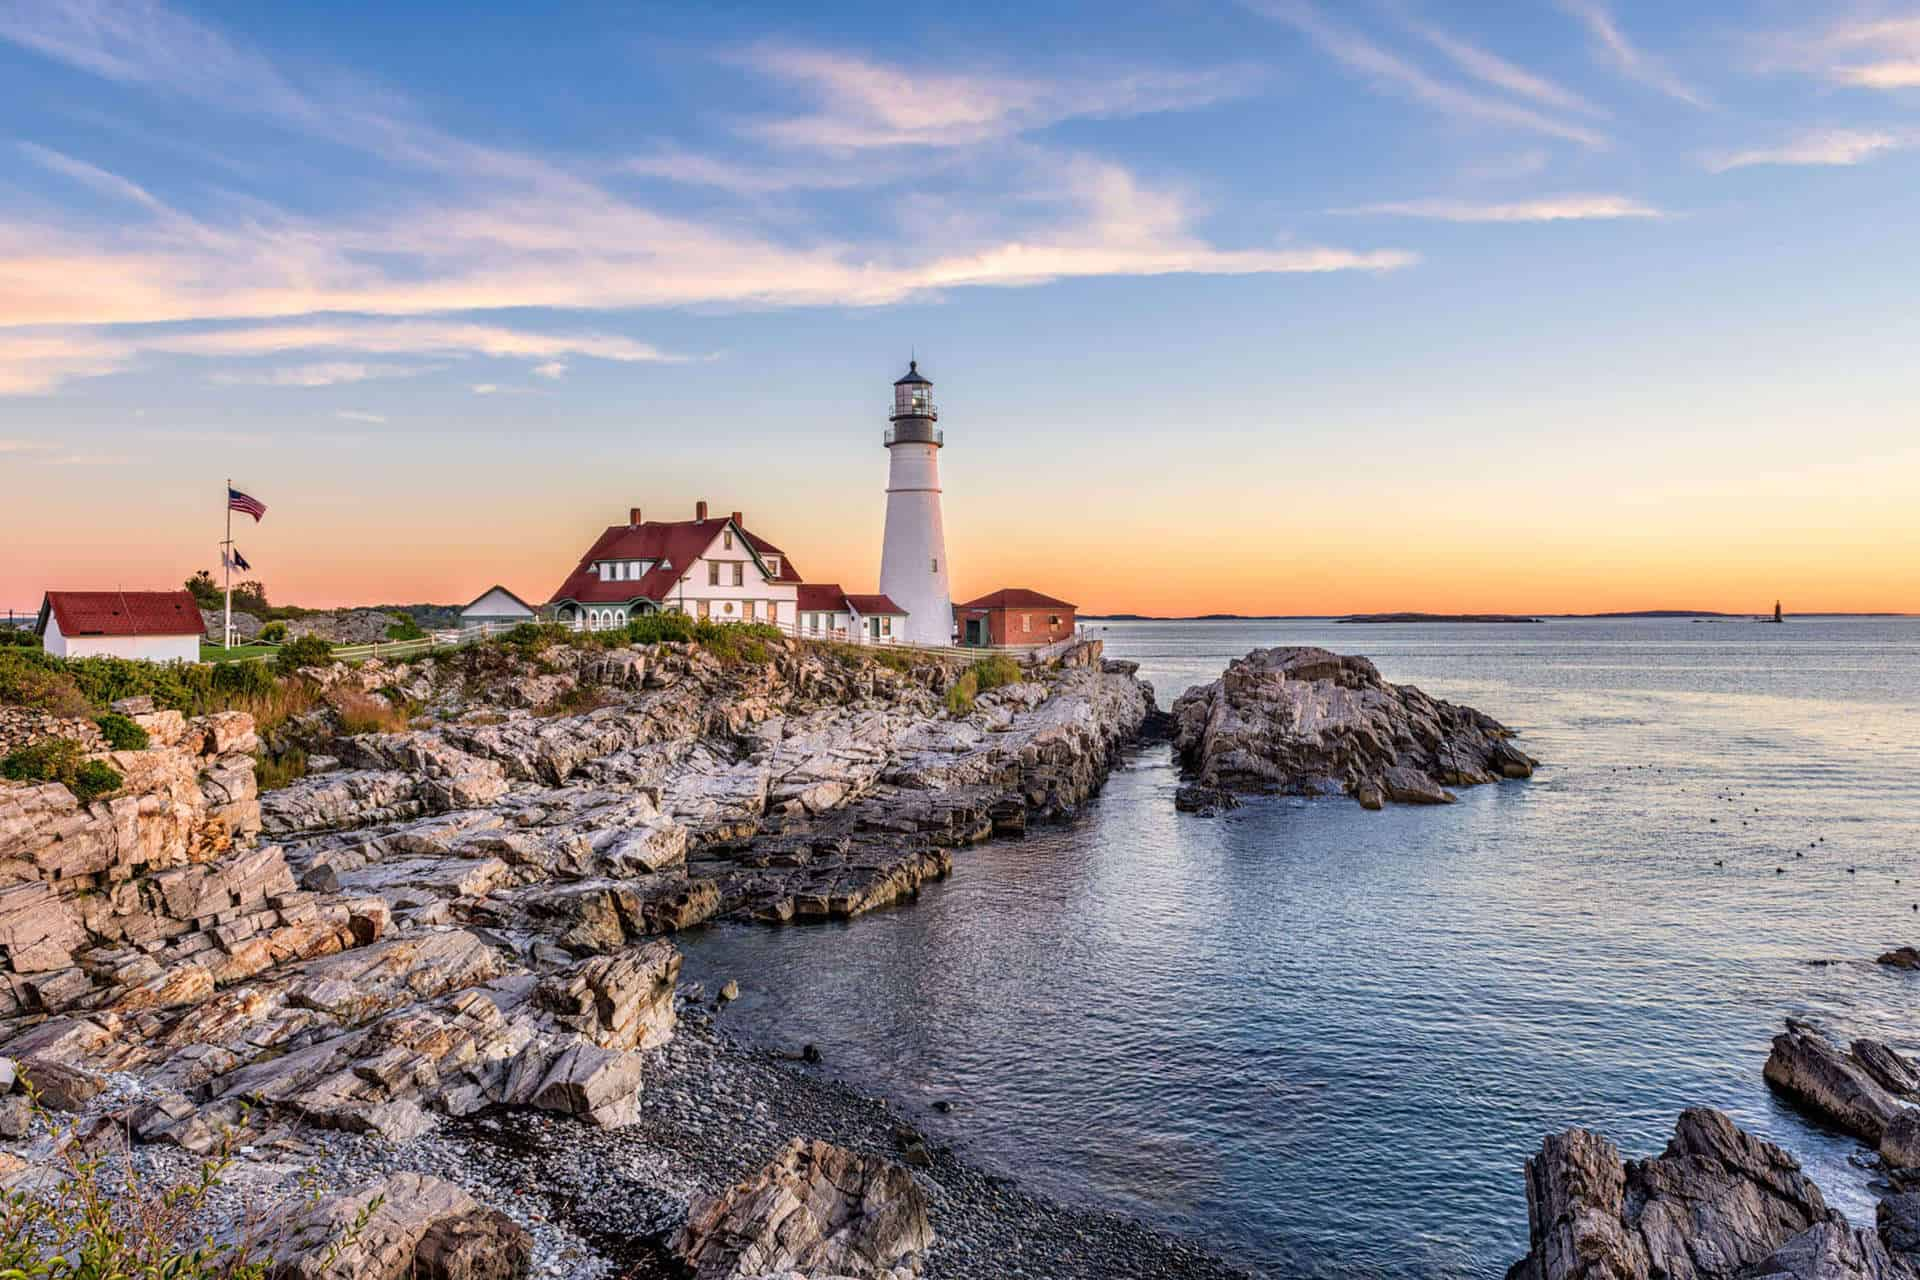 Where to Buy CBD Oil in Maine?